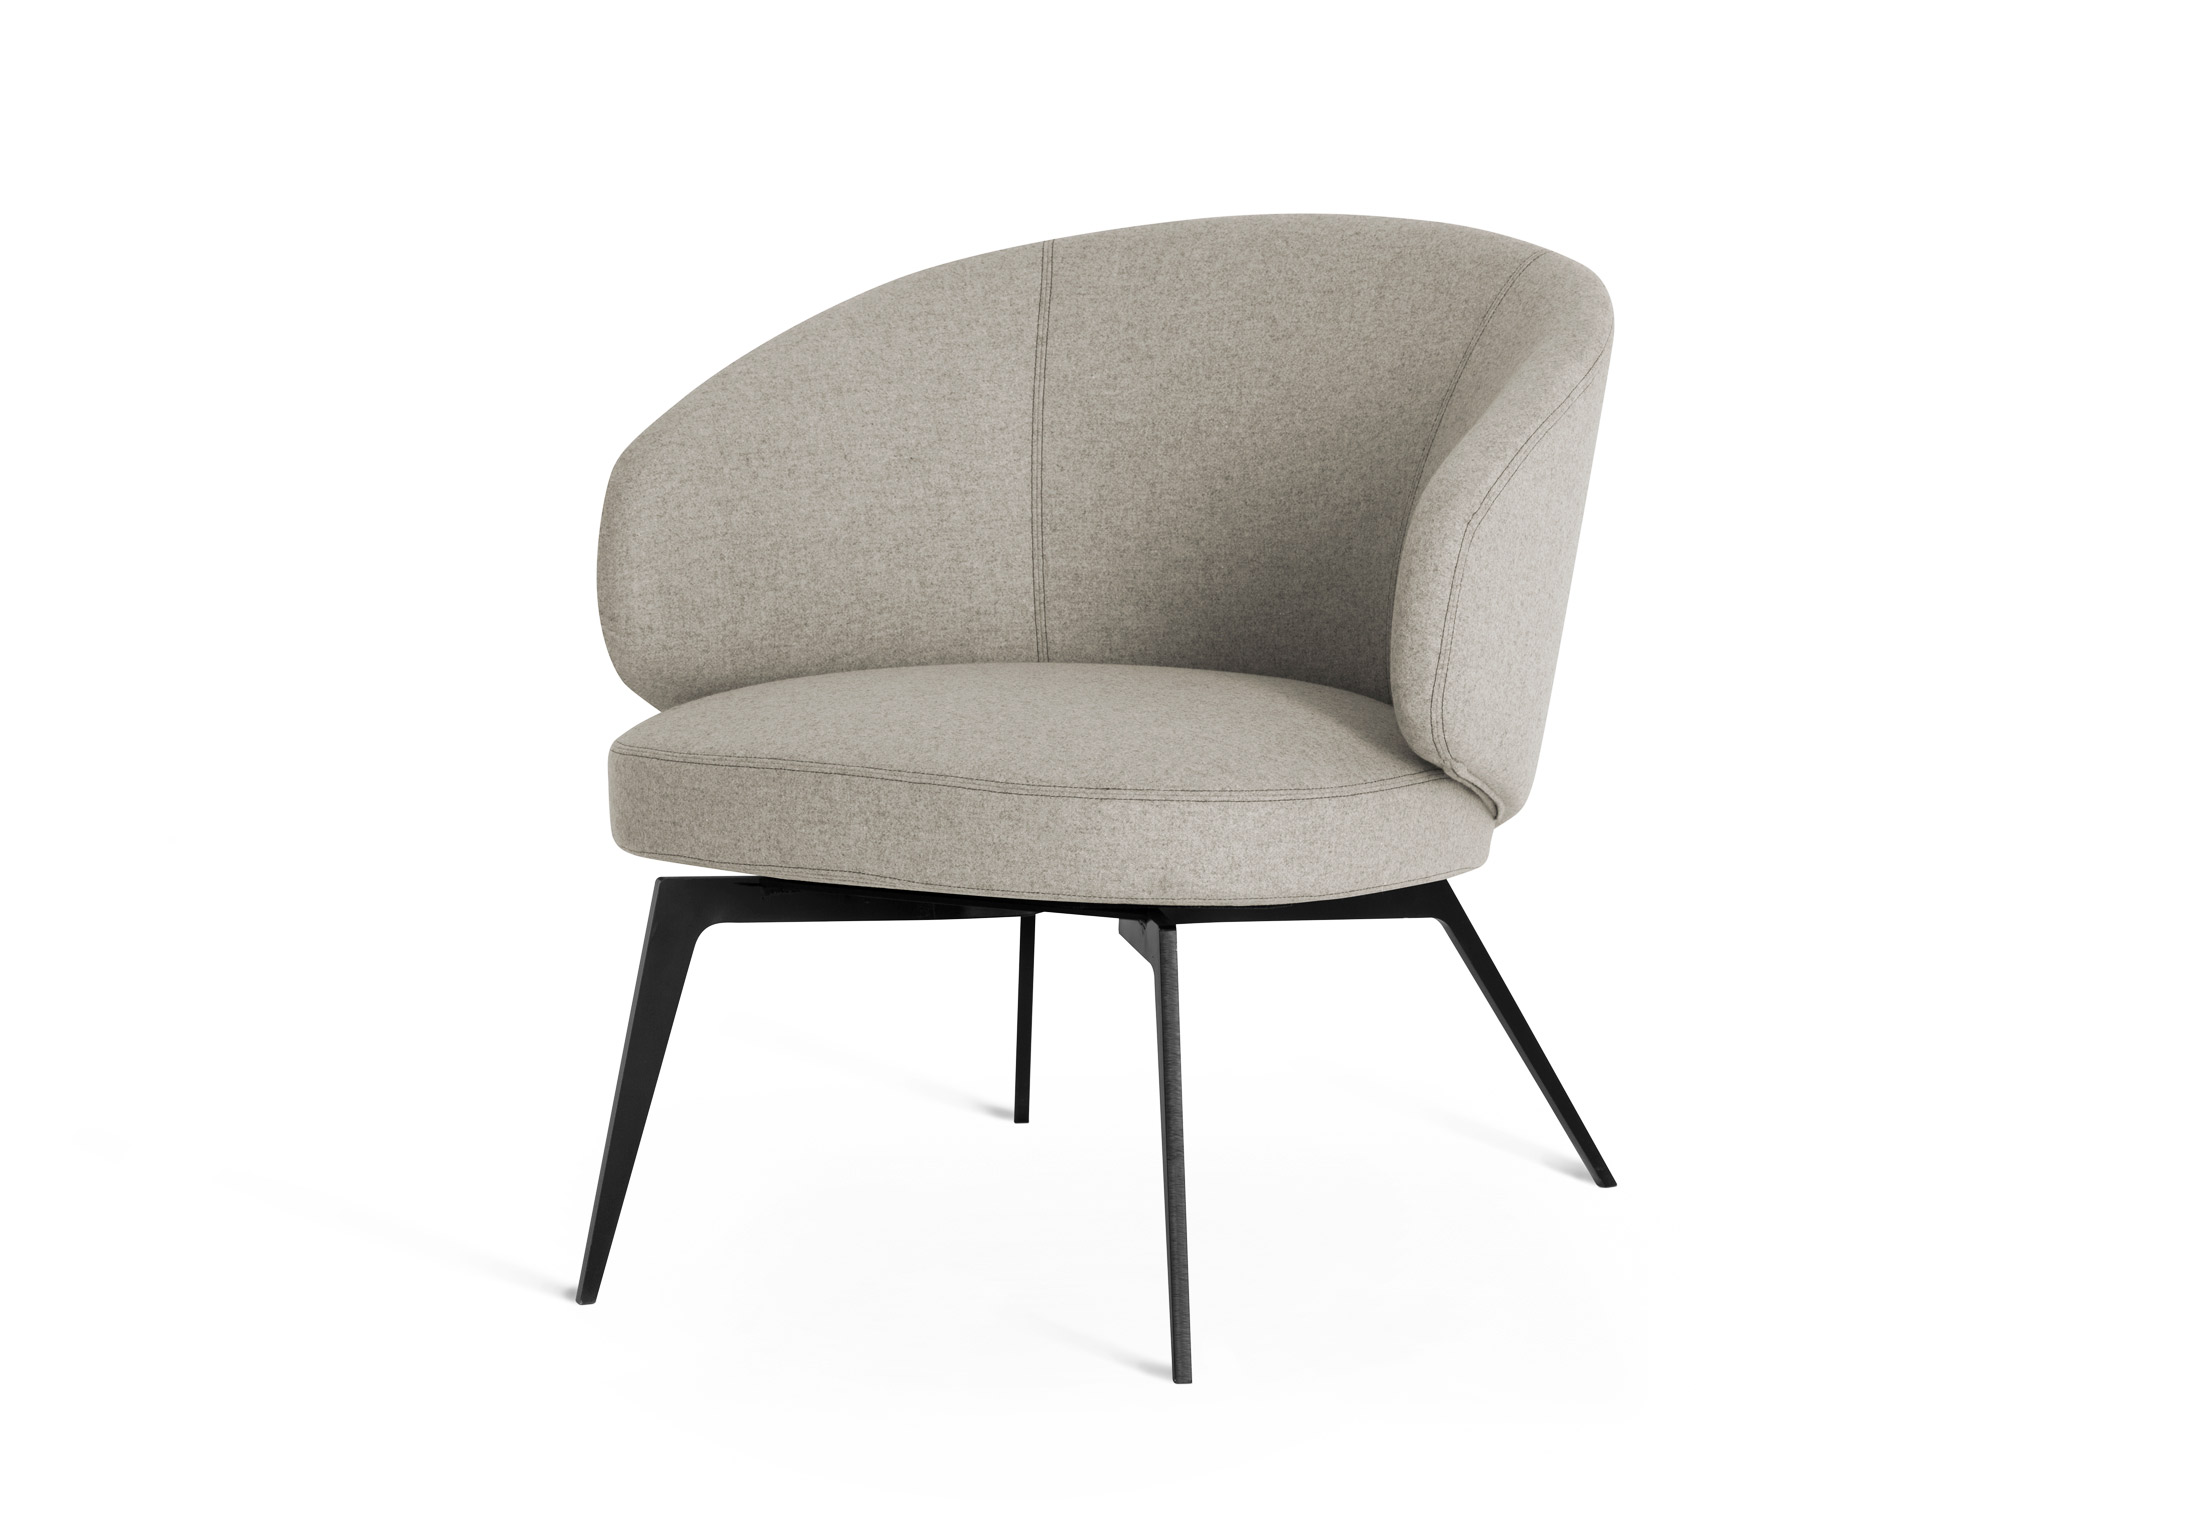 Bice Lounge Chair by Roberto Lazzeroni for Lema